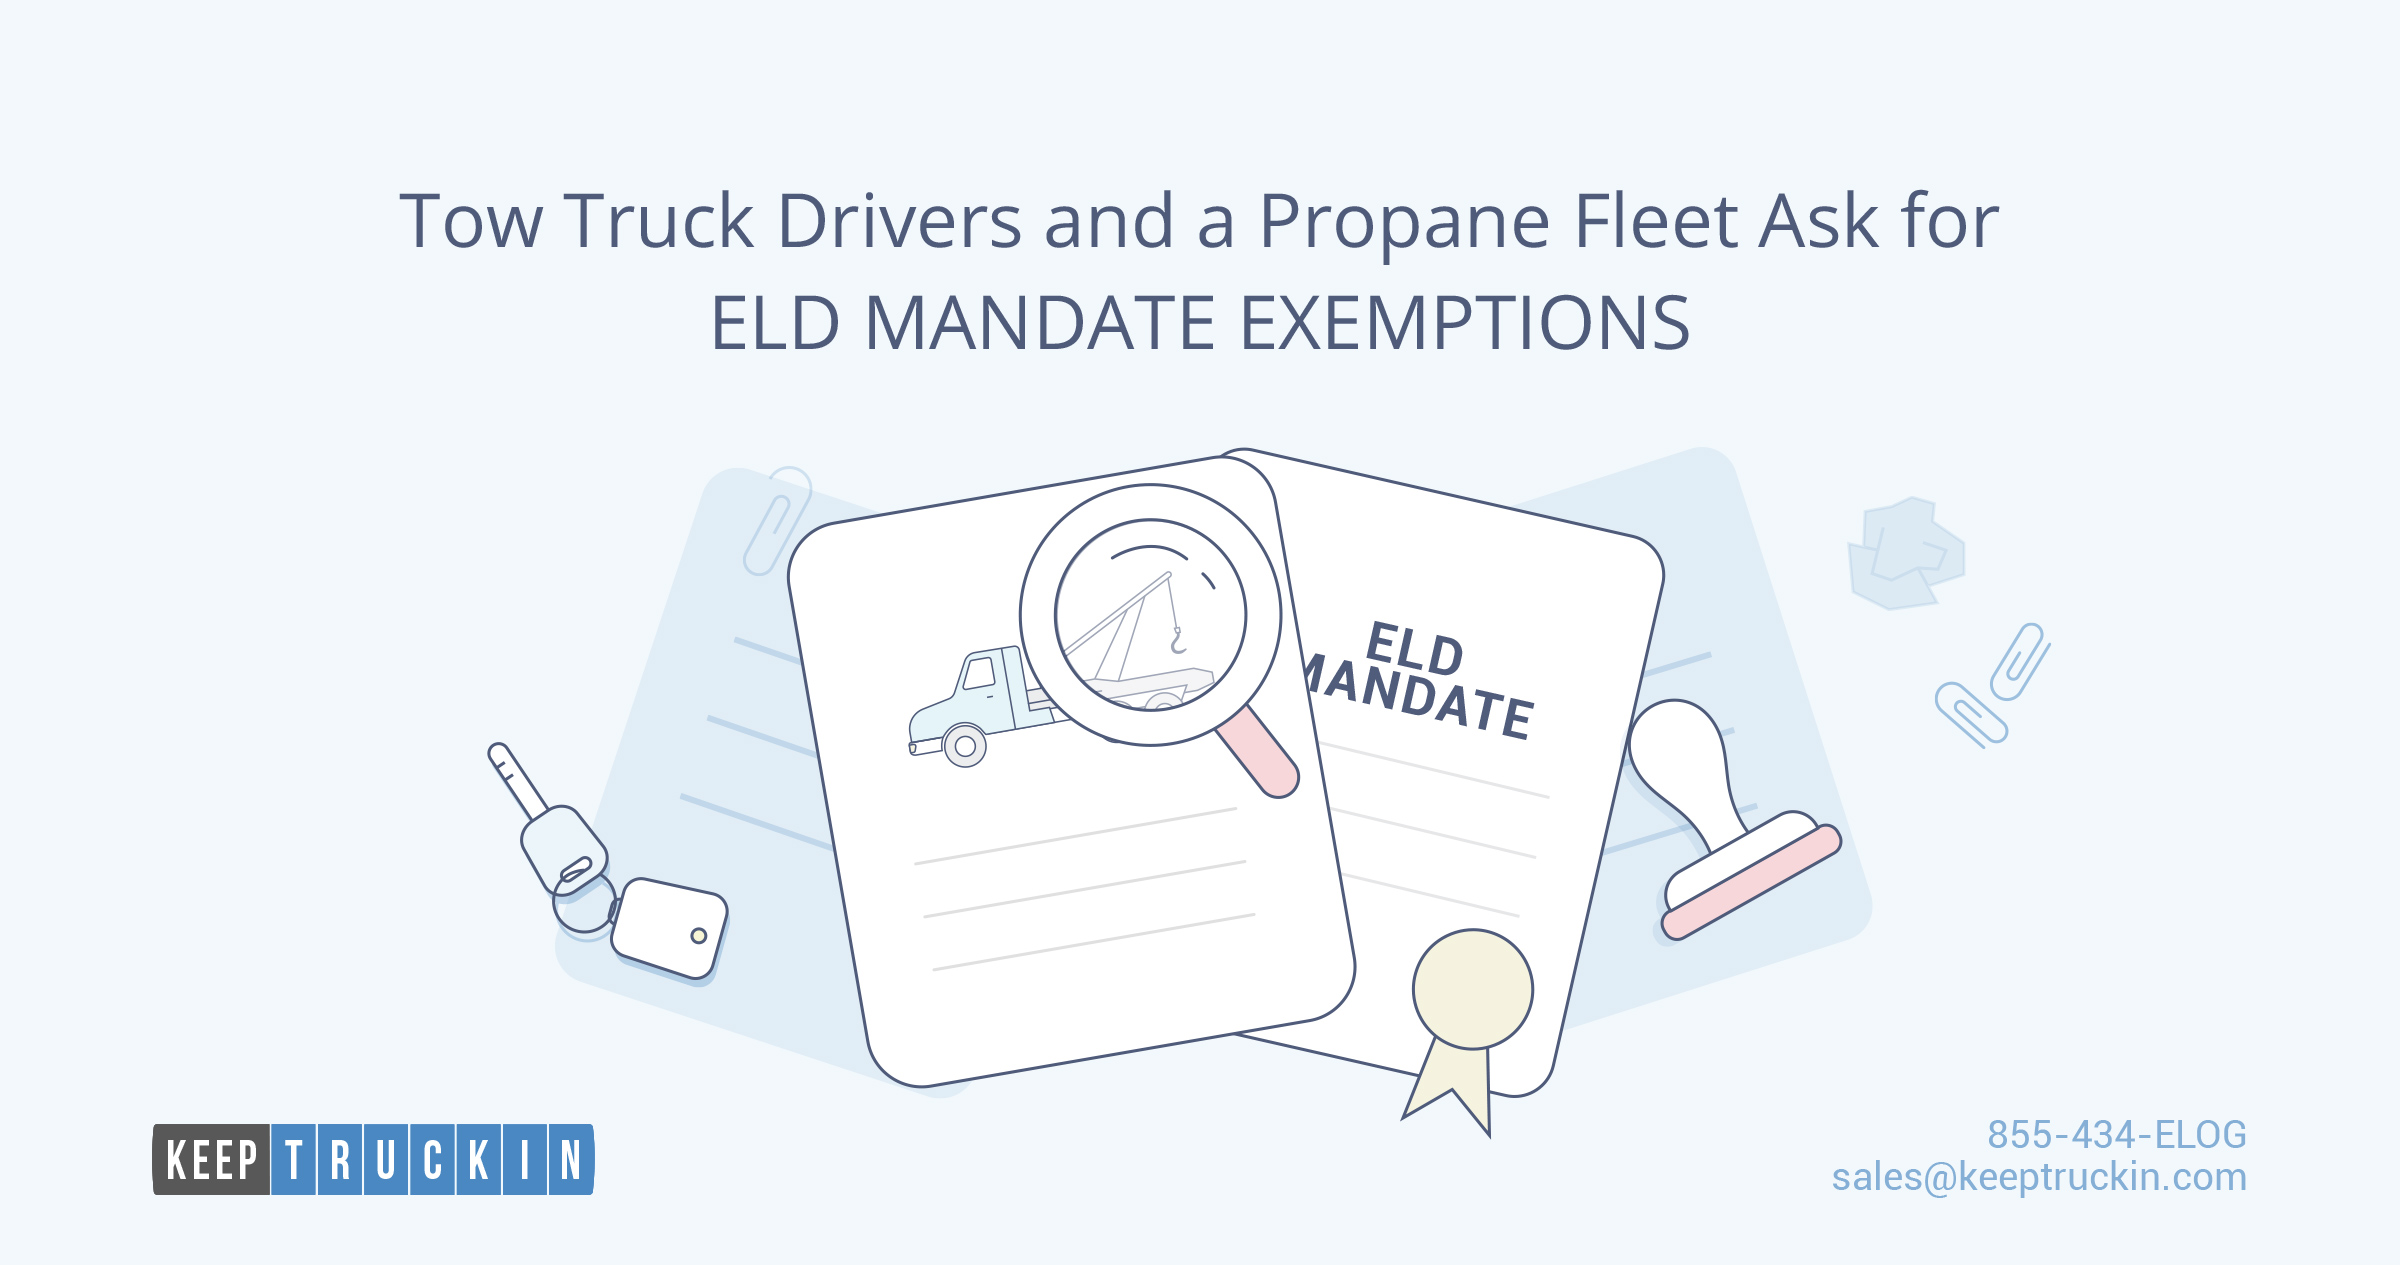 Tow truck drivers and a propane fleet ask for ELD mandate exemptions